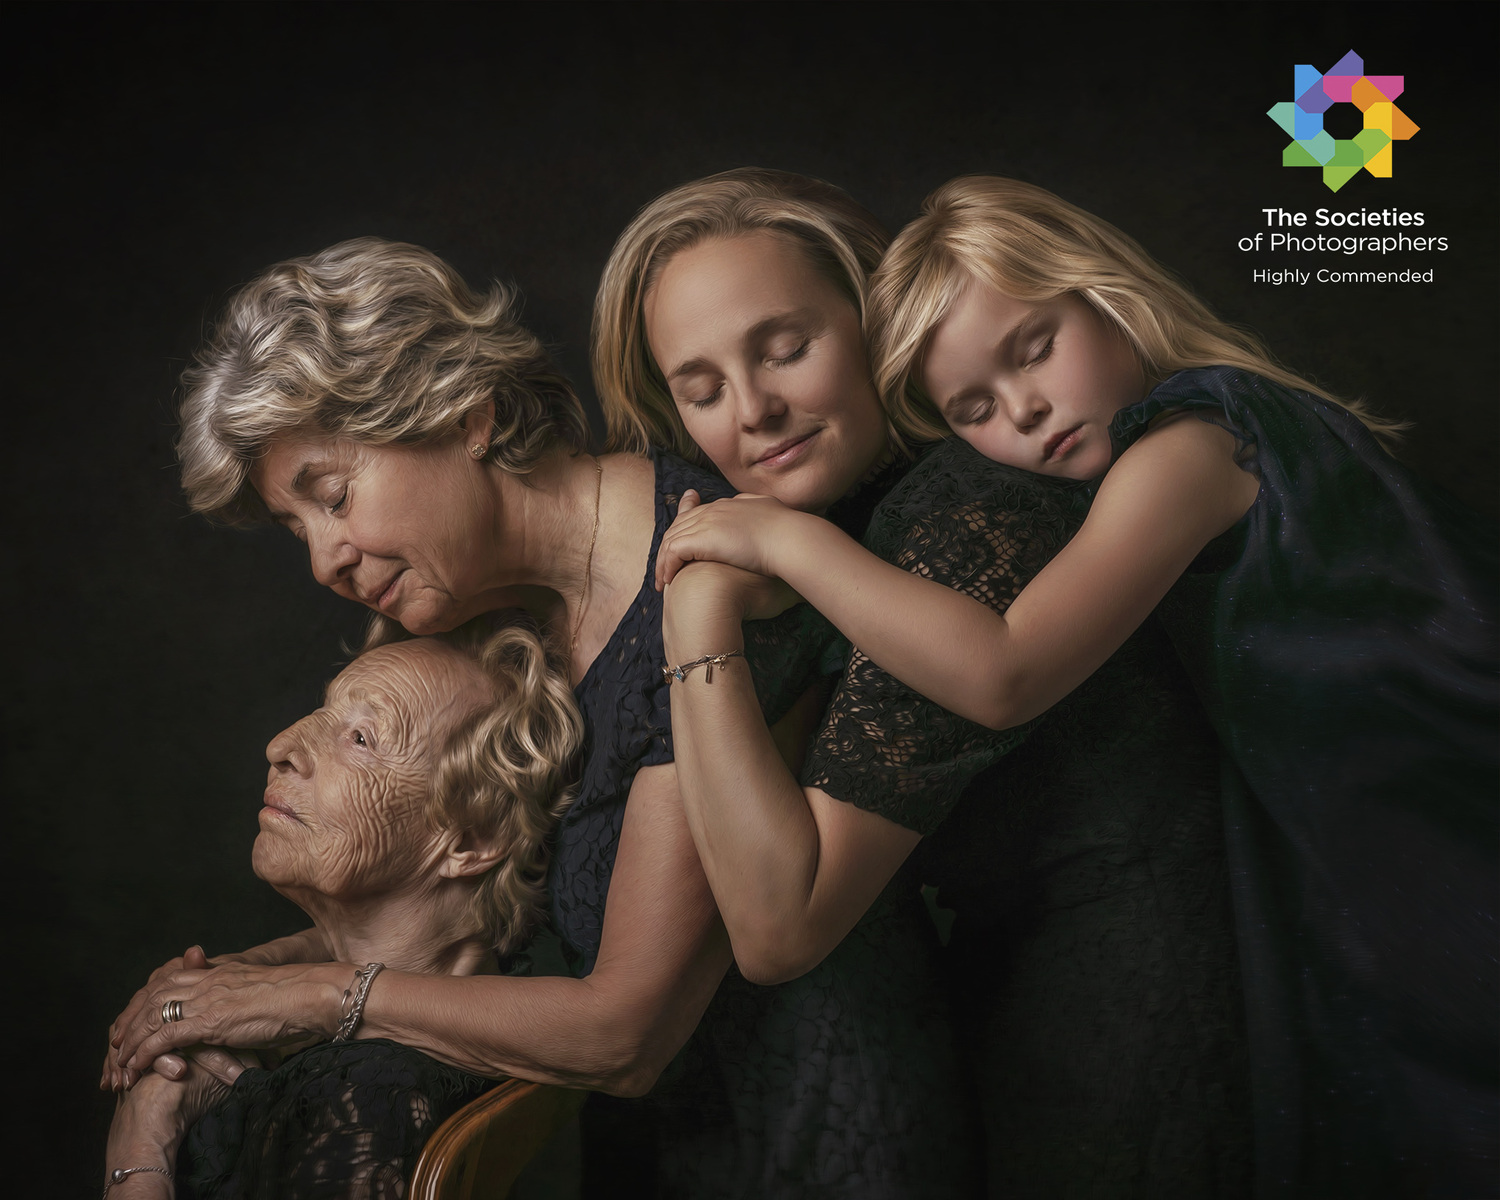 Dai Bui Photography - Highly Commended Award in Society of Wedding and Portraits Photographers, Category - Pictorial & Fine Art Author - Dai Bui; Finalist 2019 Rise Photo Awards (Australie)